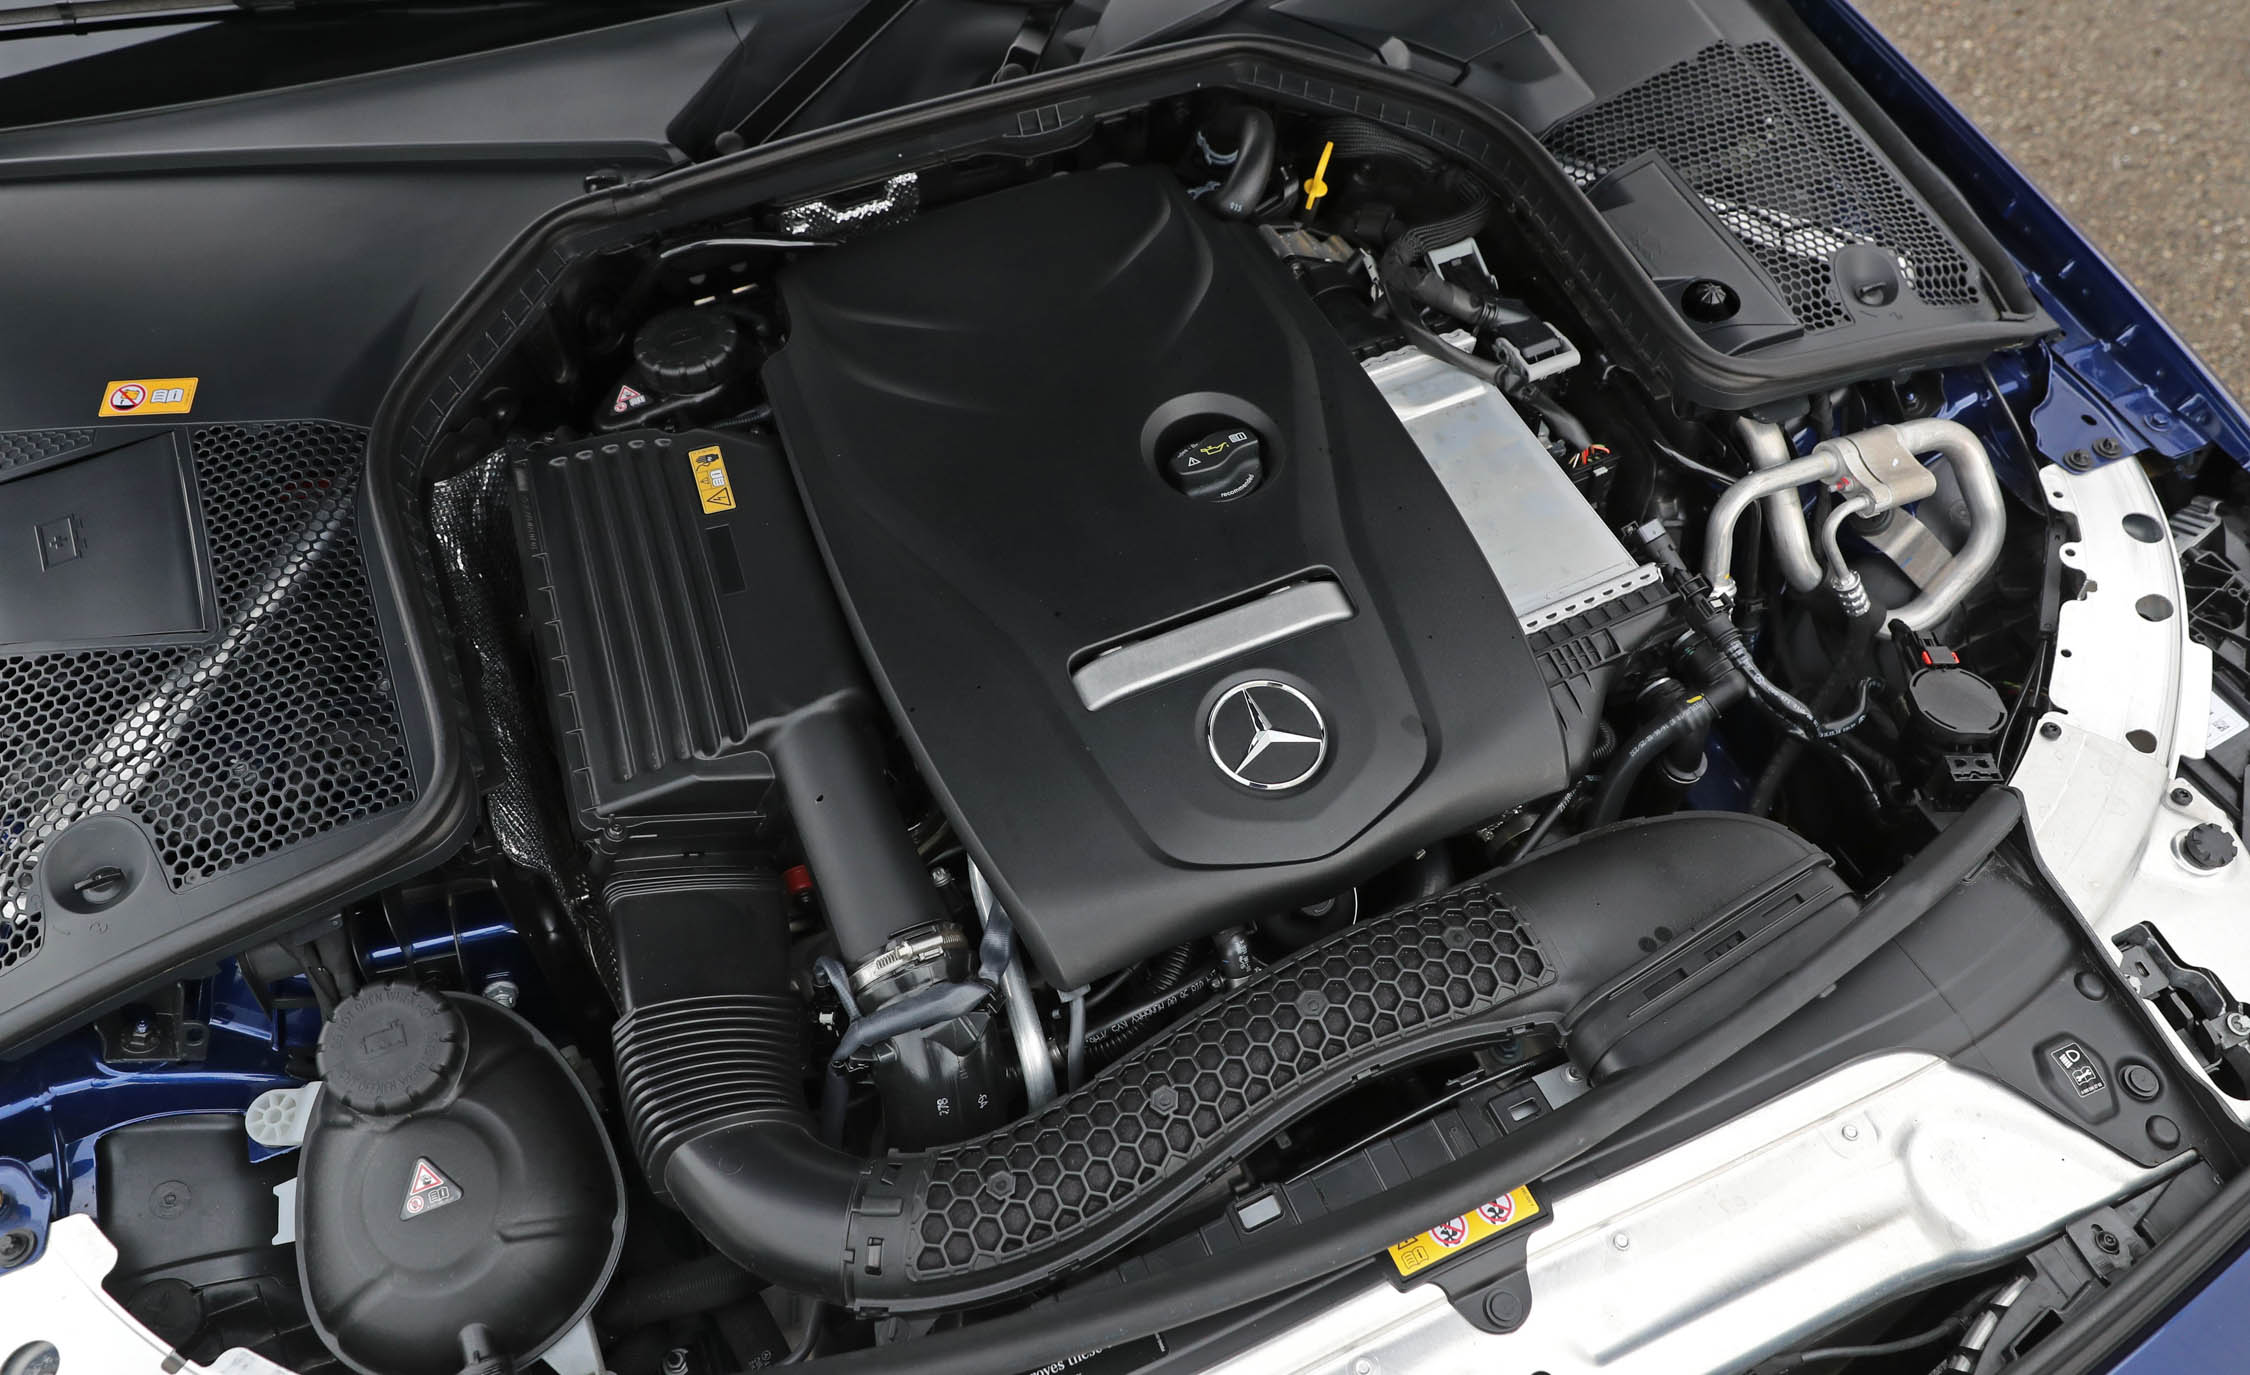 2017 Mercedes Benz C300 4MATIC Coupe View Engine (View 6 of 44)